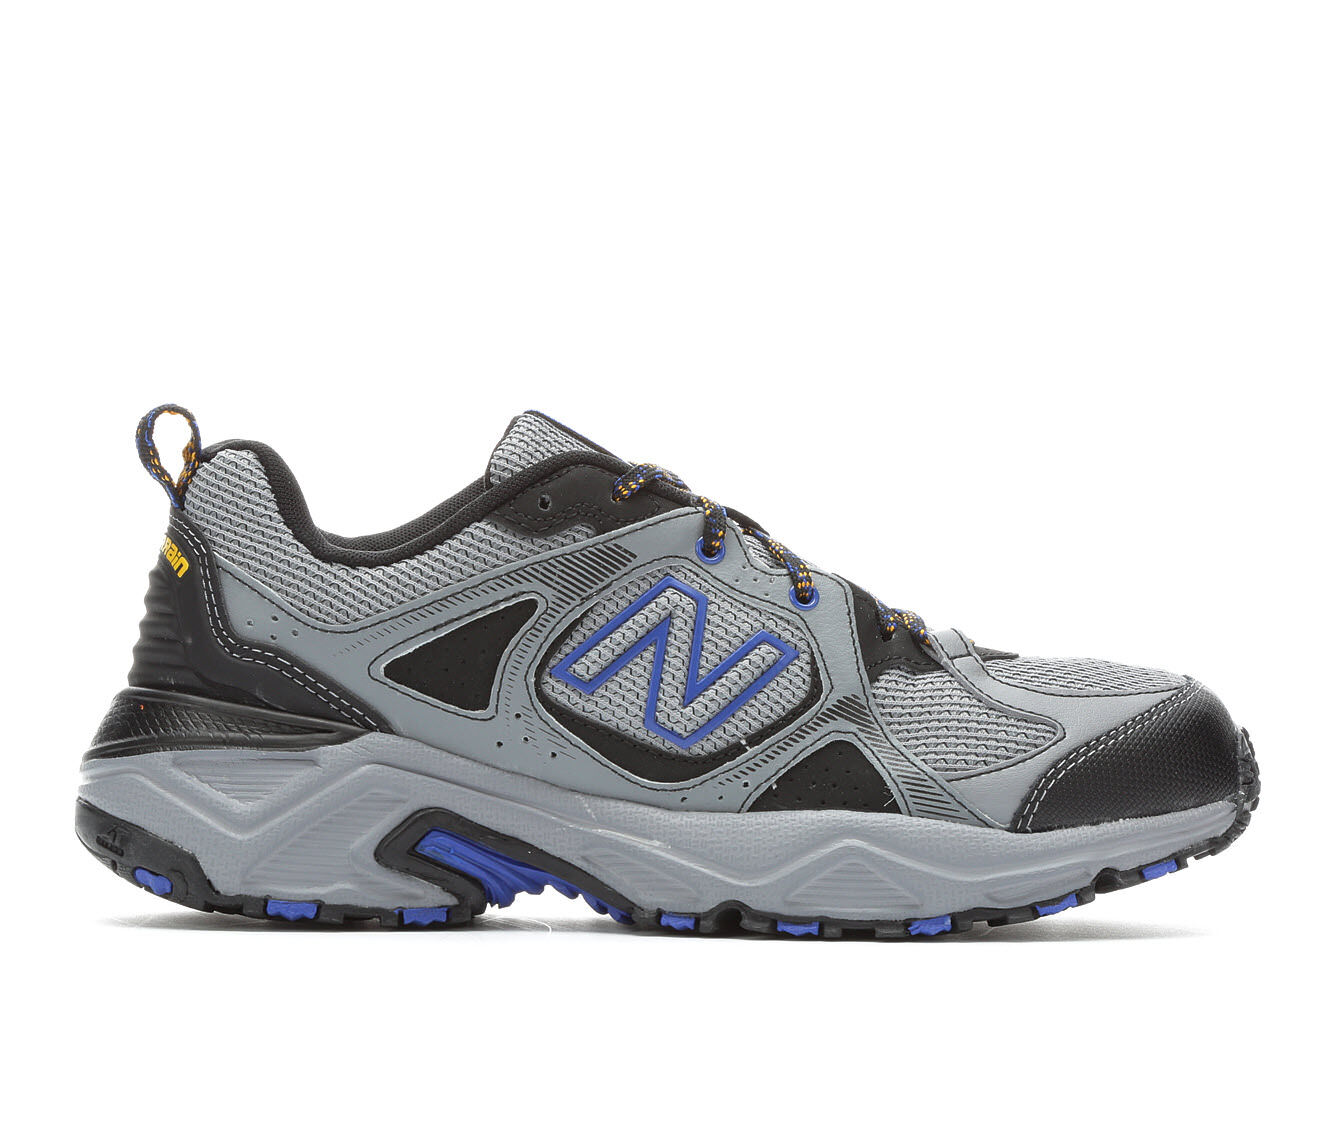 new balance men's 574 shoe wide